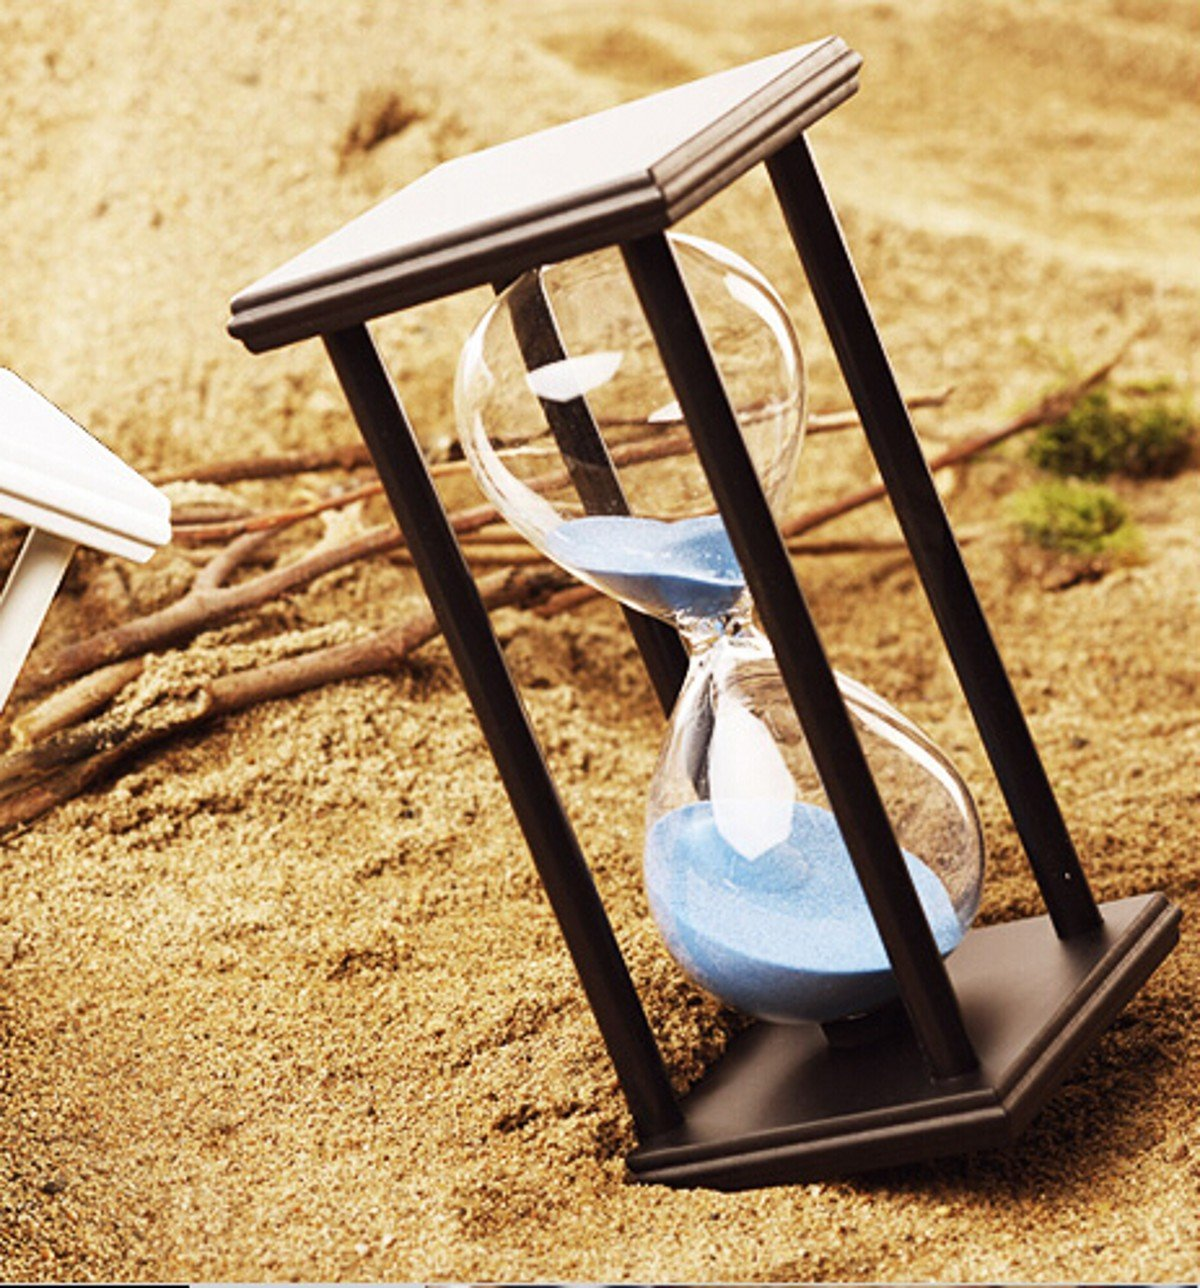 Hourglass Sand Timer - 60 Minute 1 Hour Wood Sand Timer for Kitchen, Office, School and Decorative Use - Black Stand With Blue Color Sand